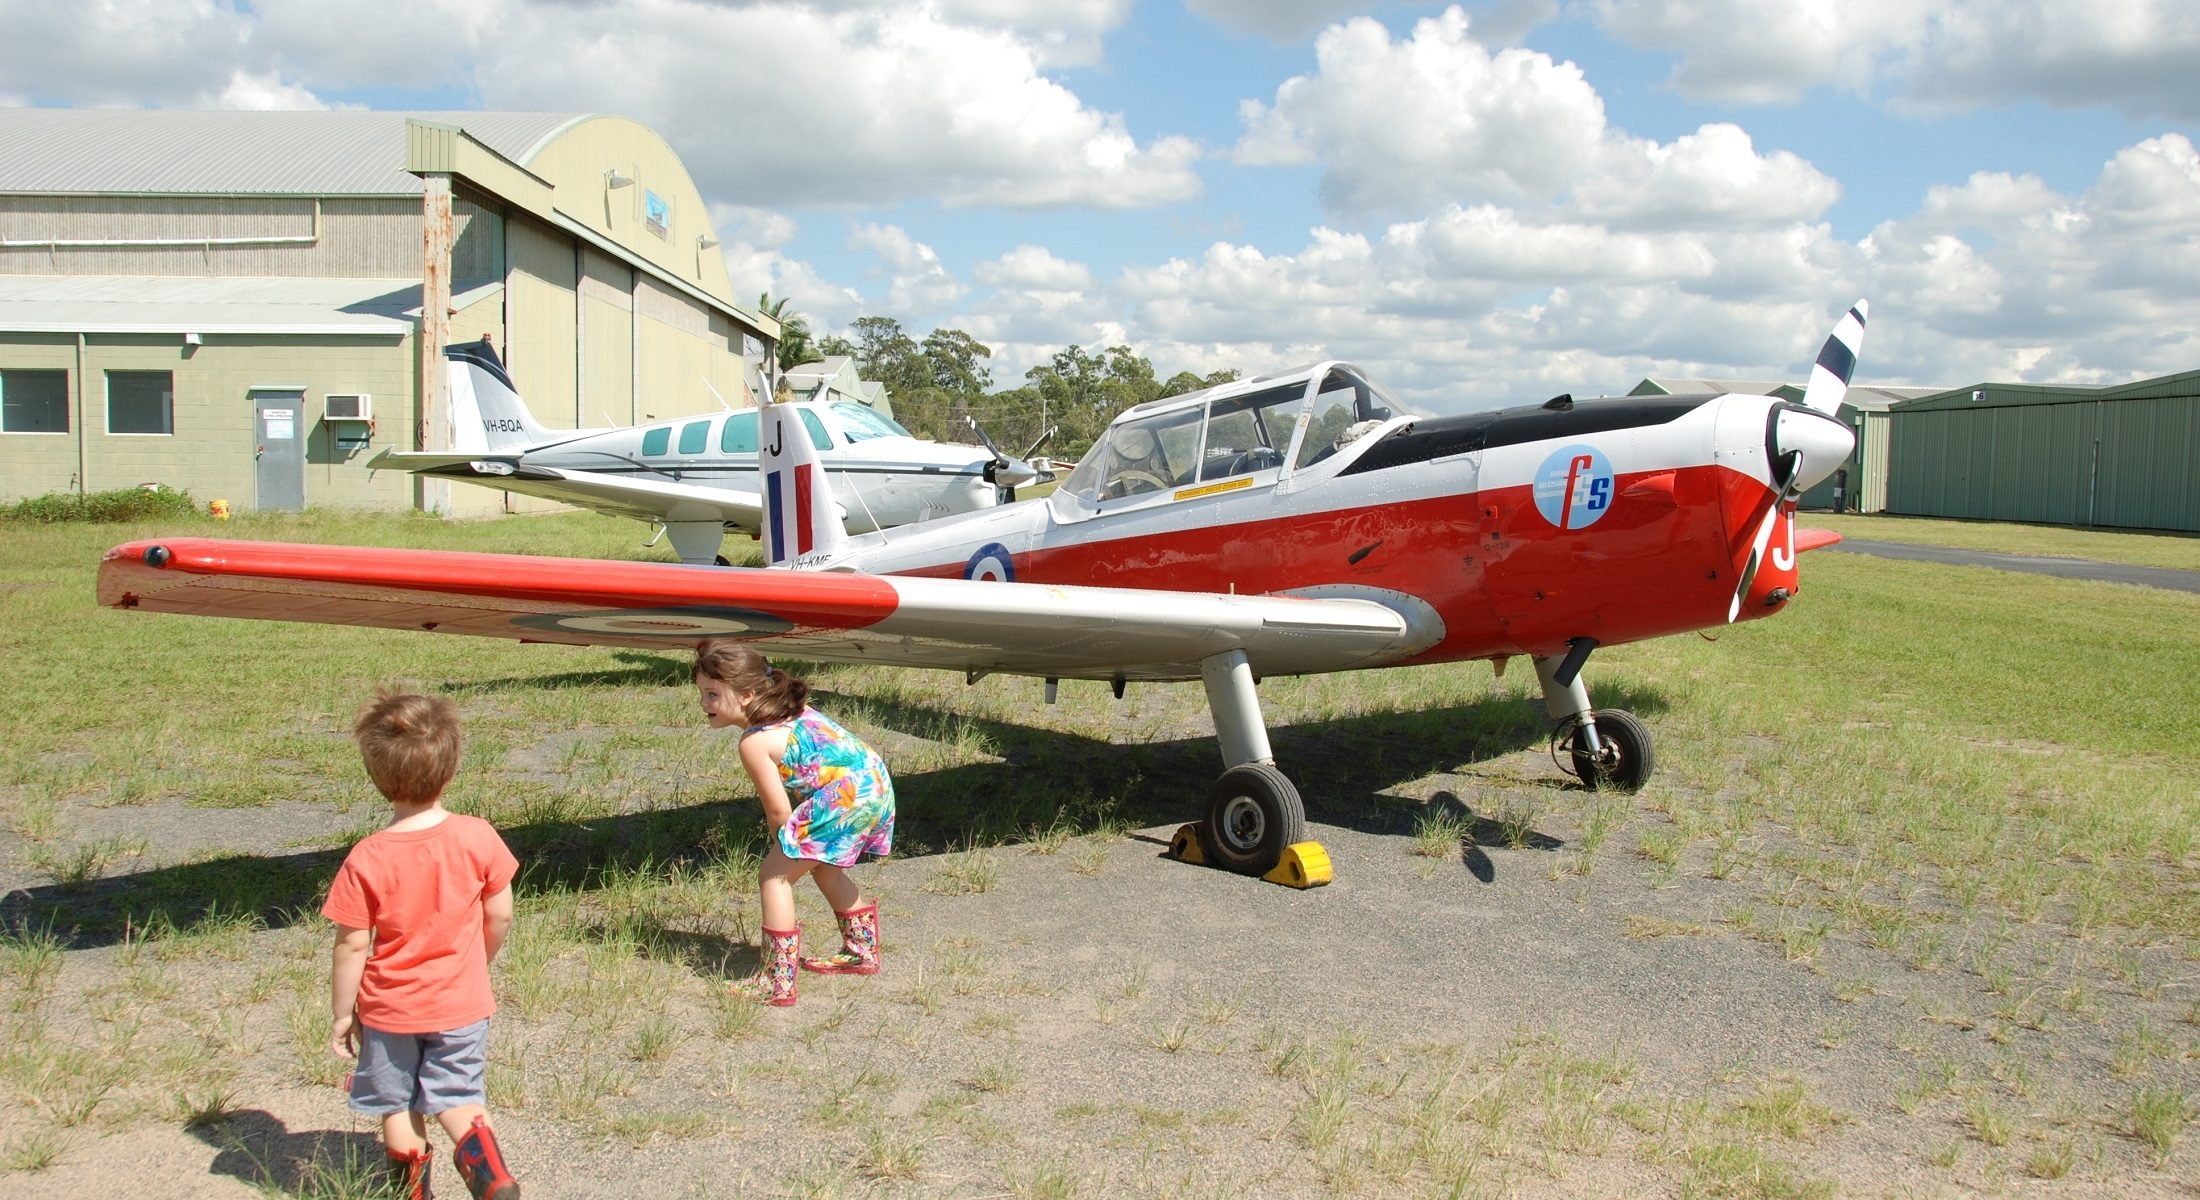 Caboolture Warplane Museum Red Plane On Field Kids Moreton Bay Region